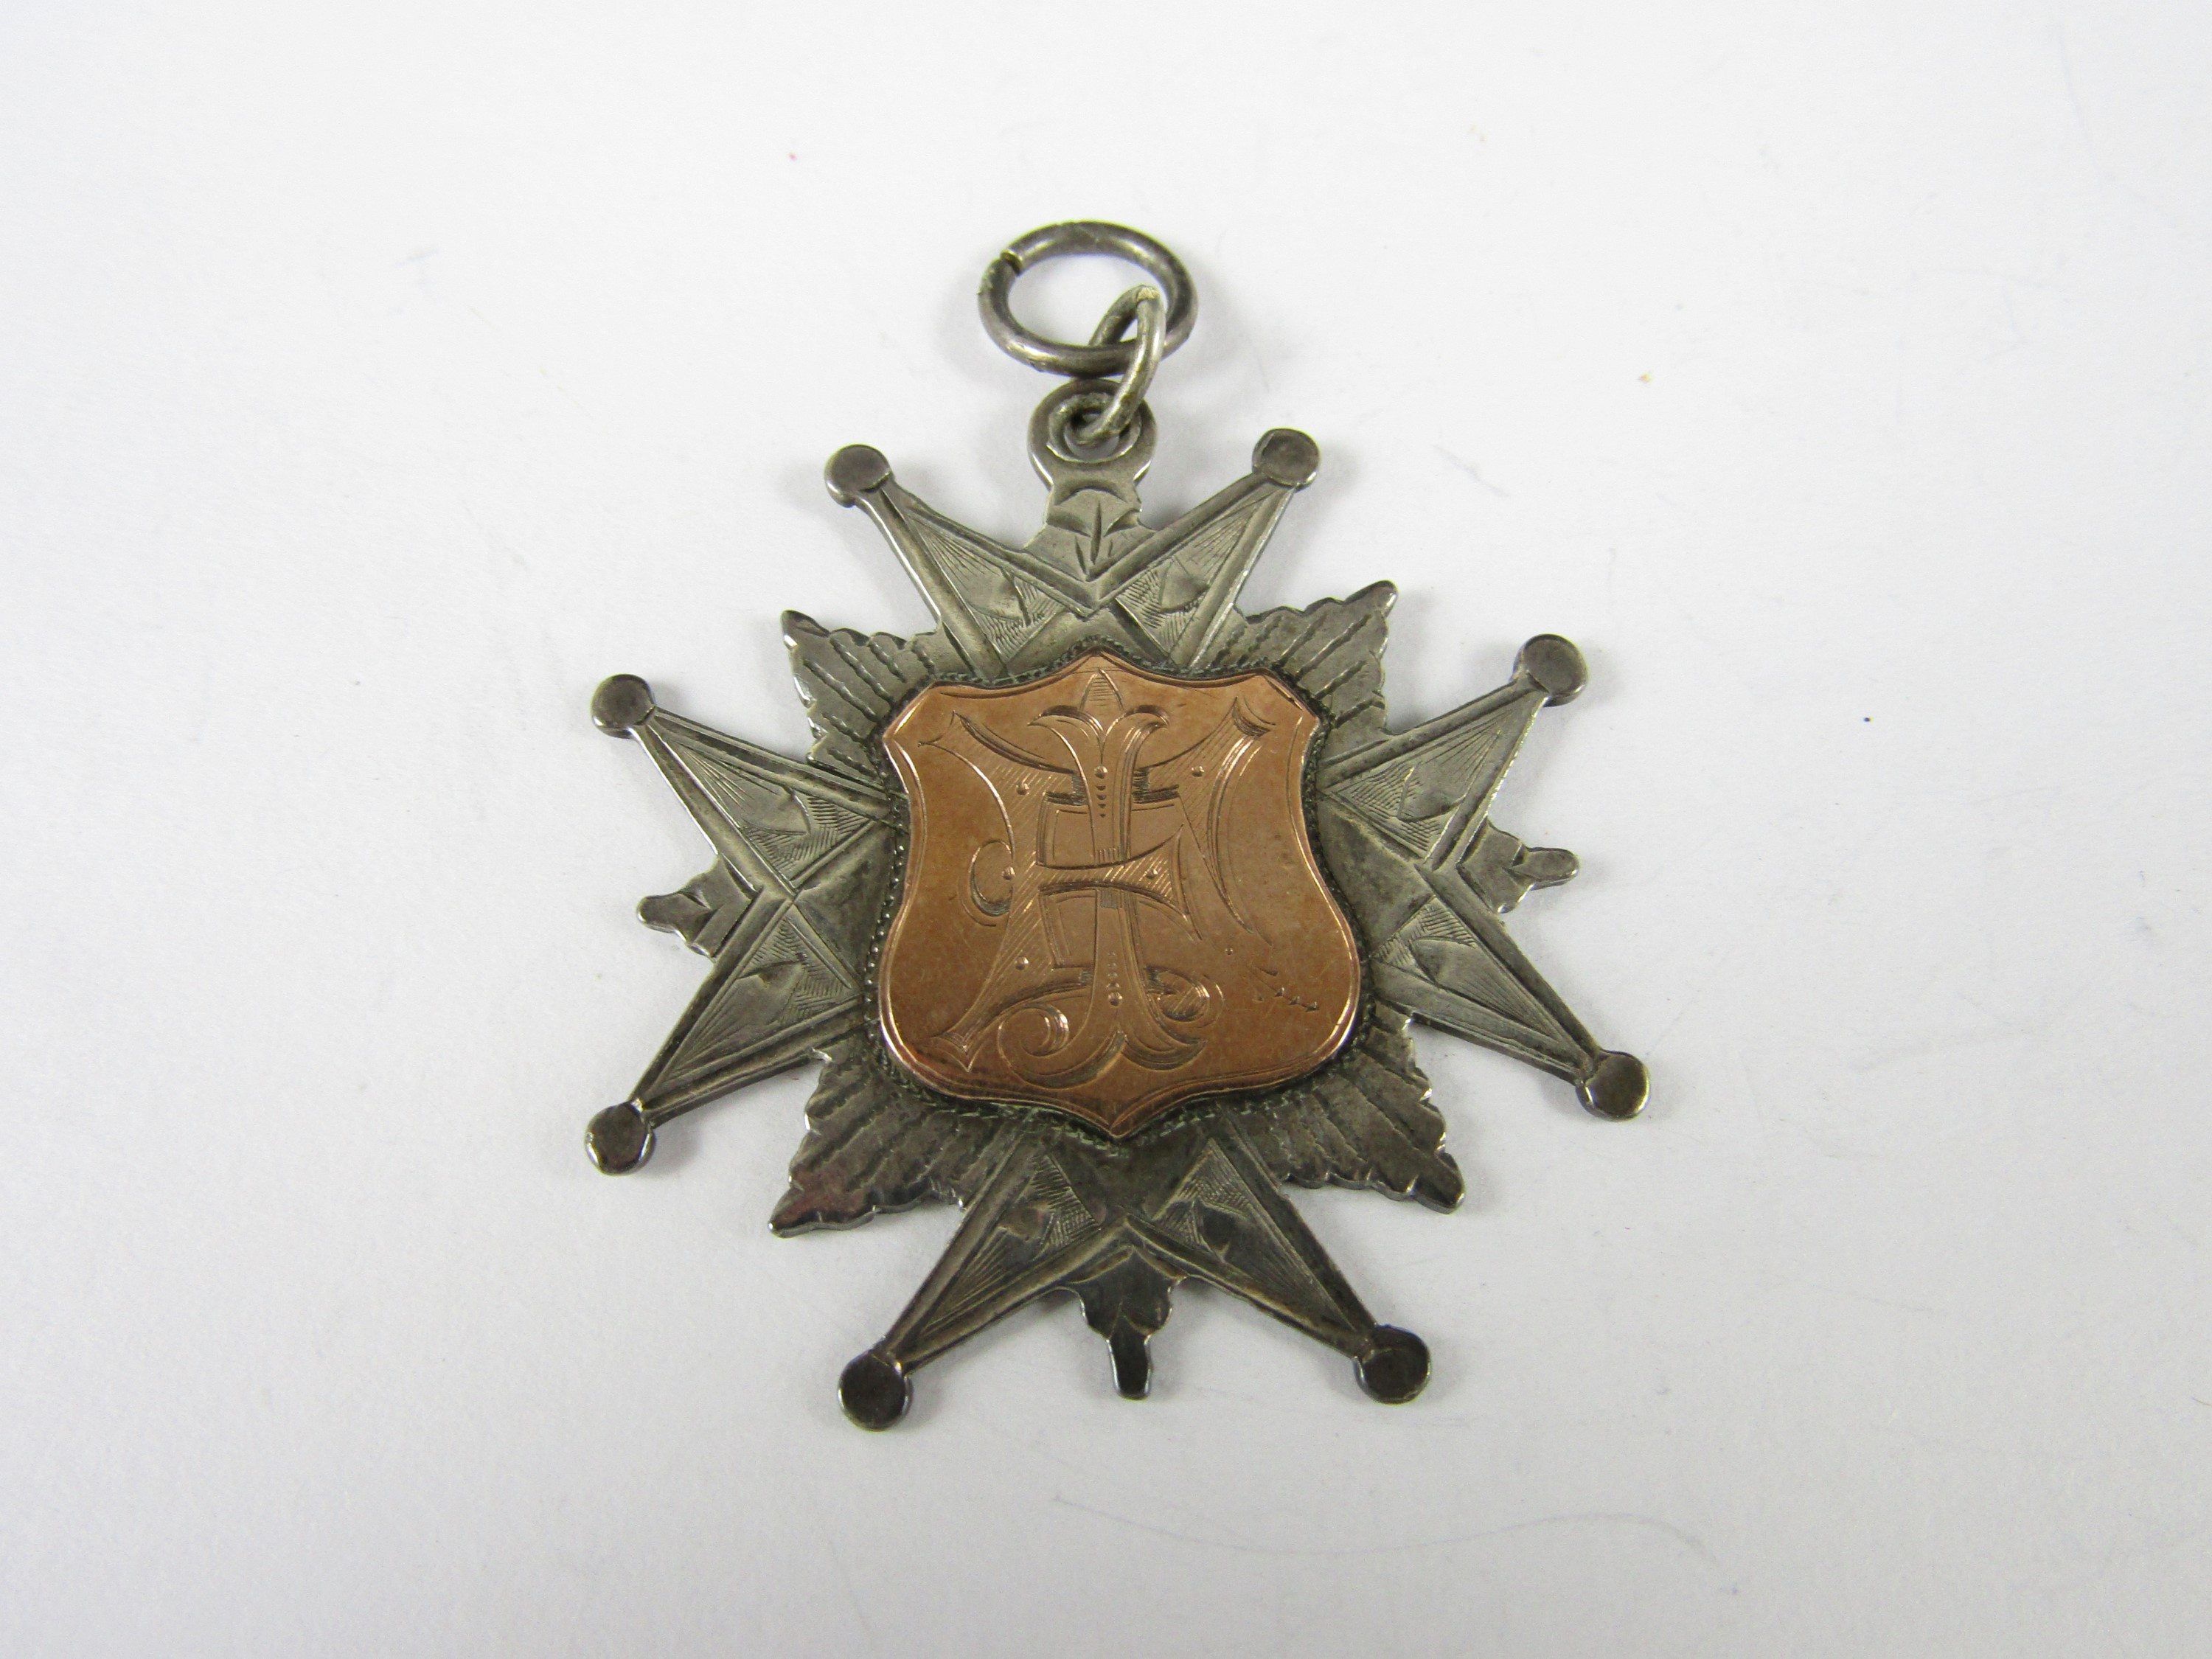 Lot 47 - A Victorian silver prize fob medallion, ECVA, No 5 Coy, Monthly Medal won by Corporal Fraser, 1894